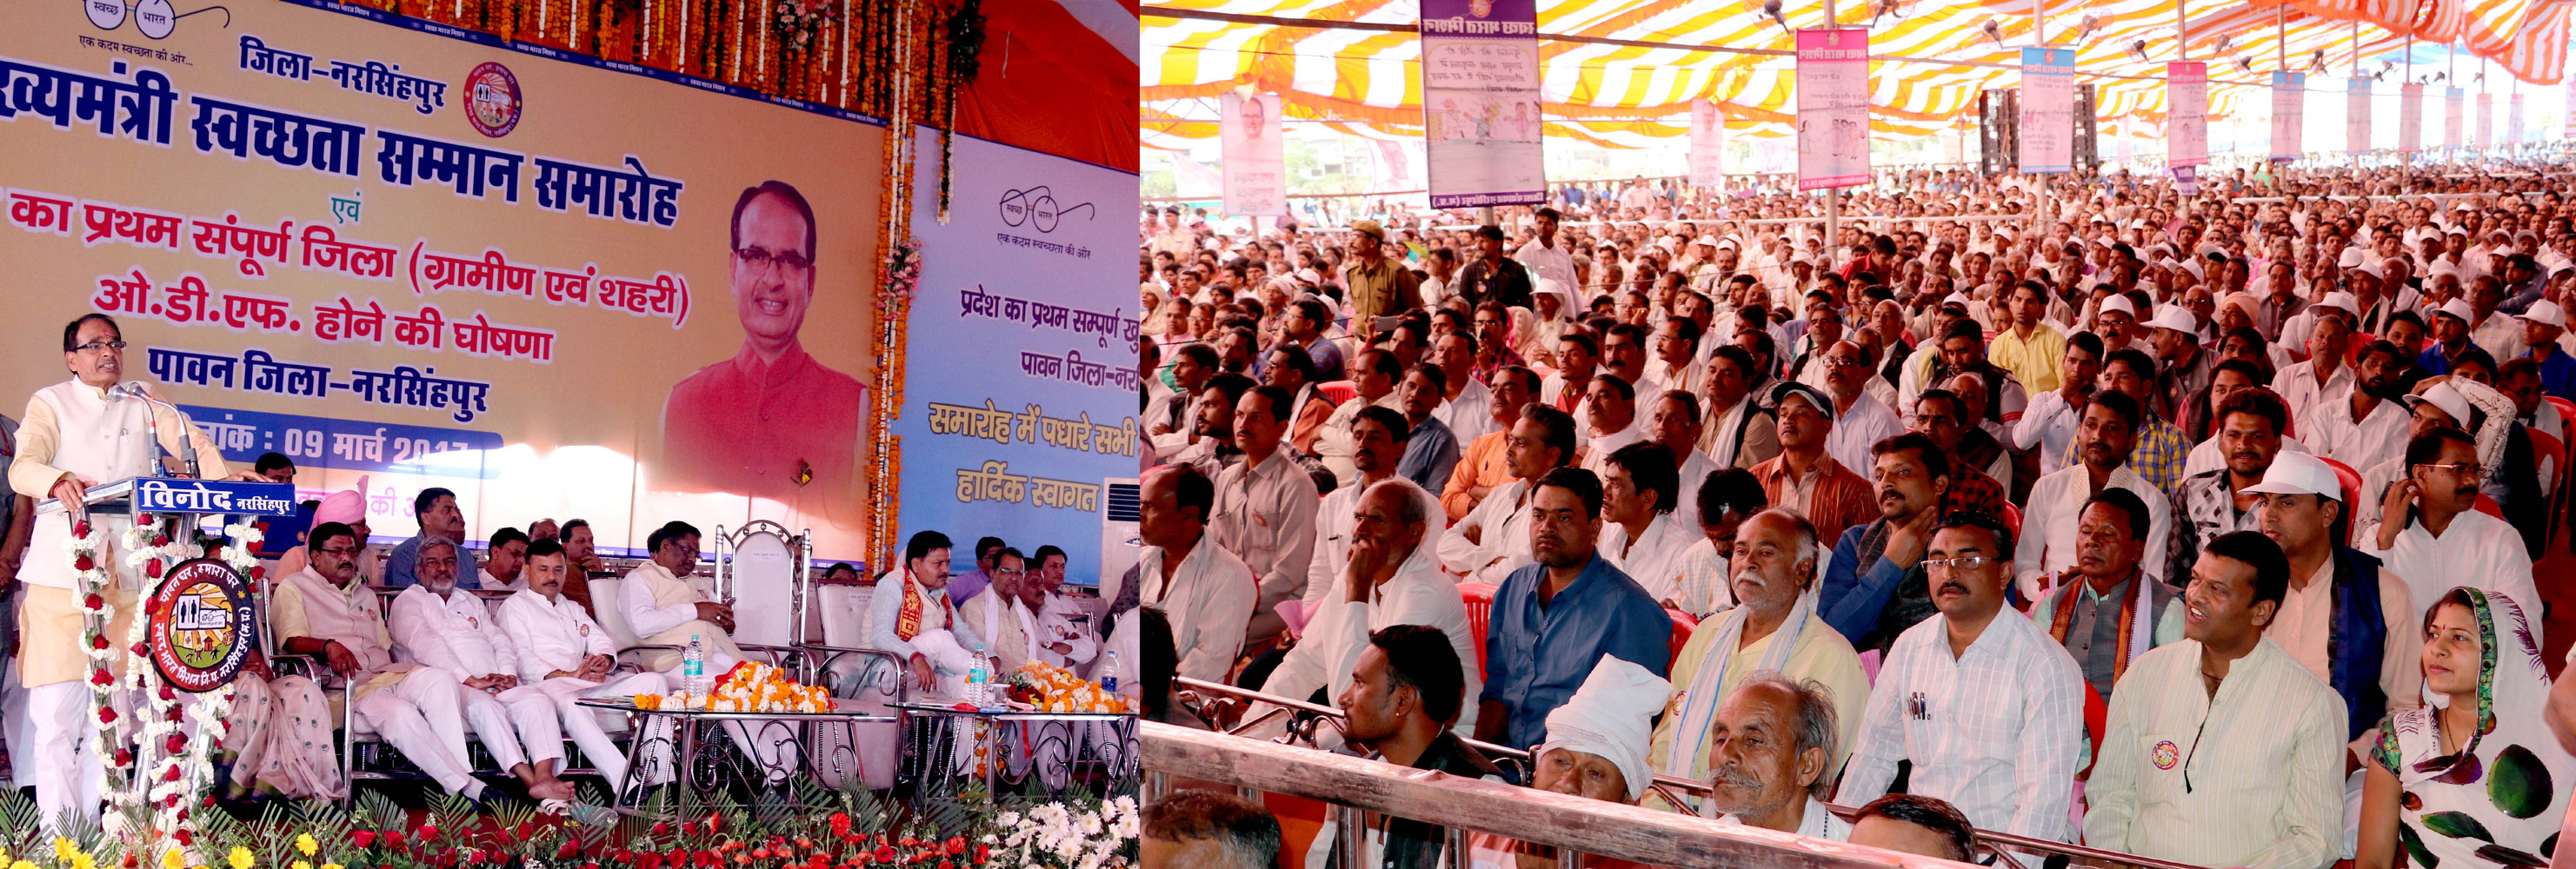 Chief Minister declares Narsinghpur district open defecation free (ODF)